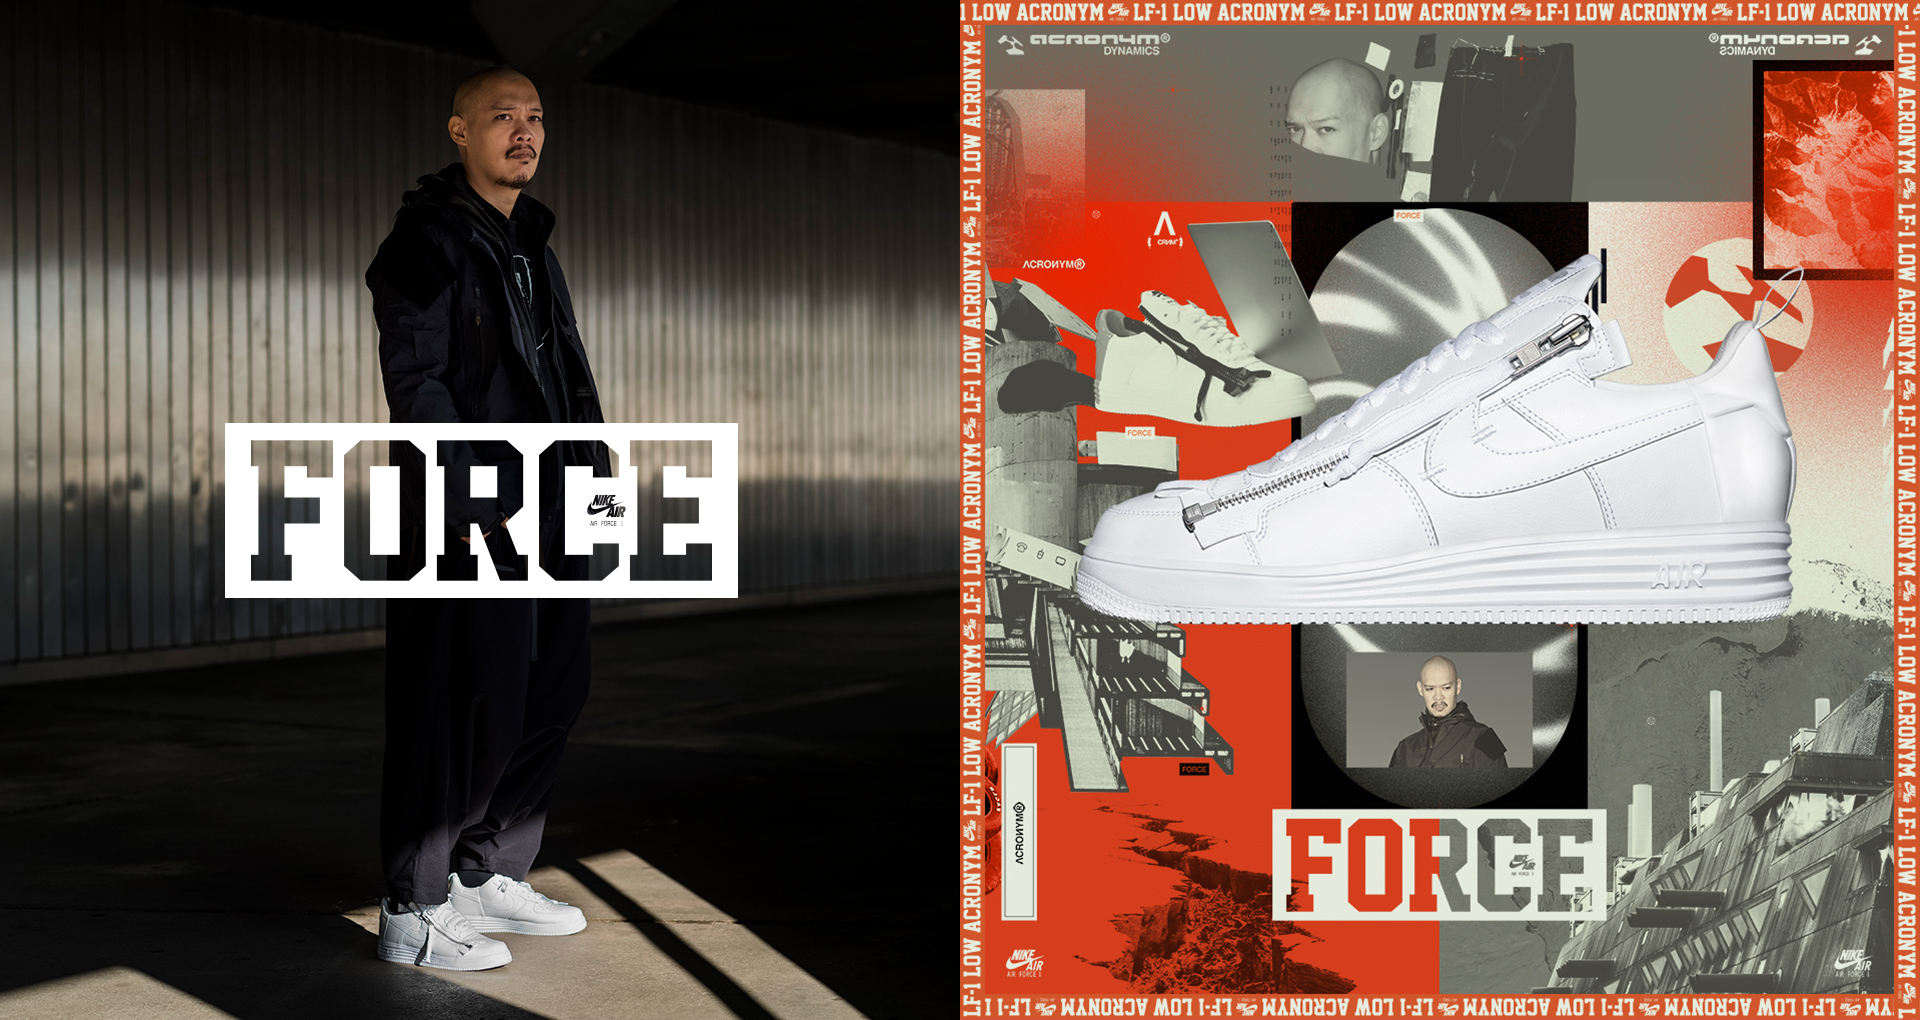 AF100 ランナー ルナフォース1 アクロニウム '17 byエロルソン・ヒュー